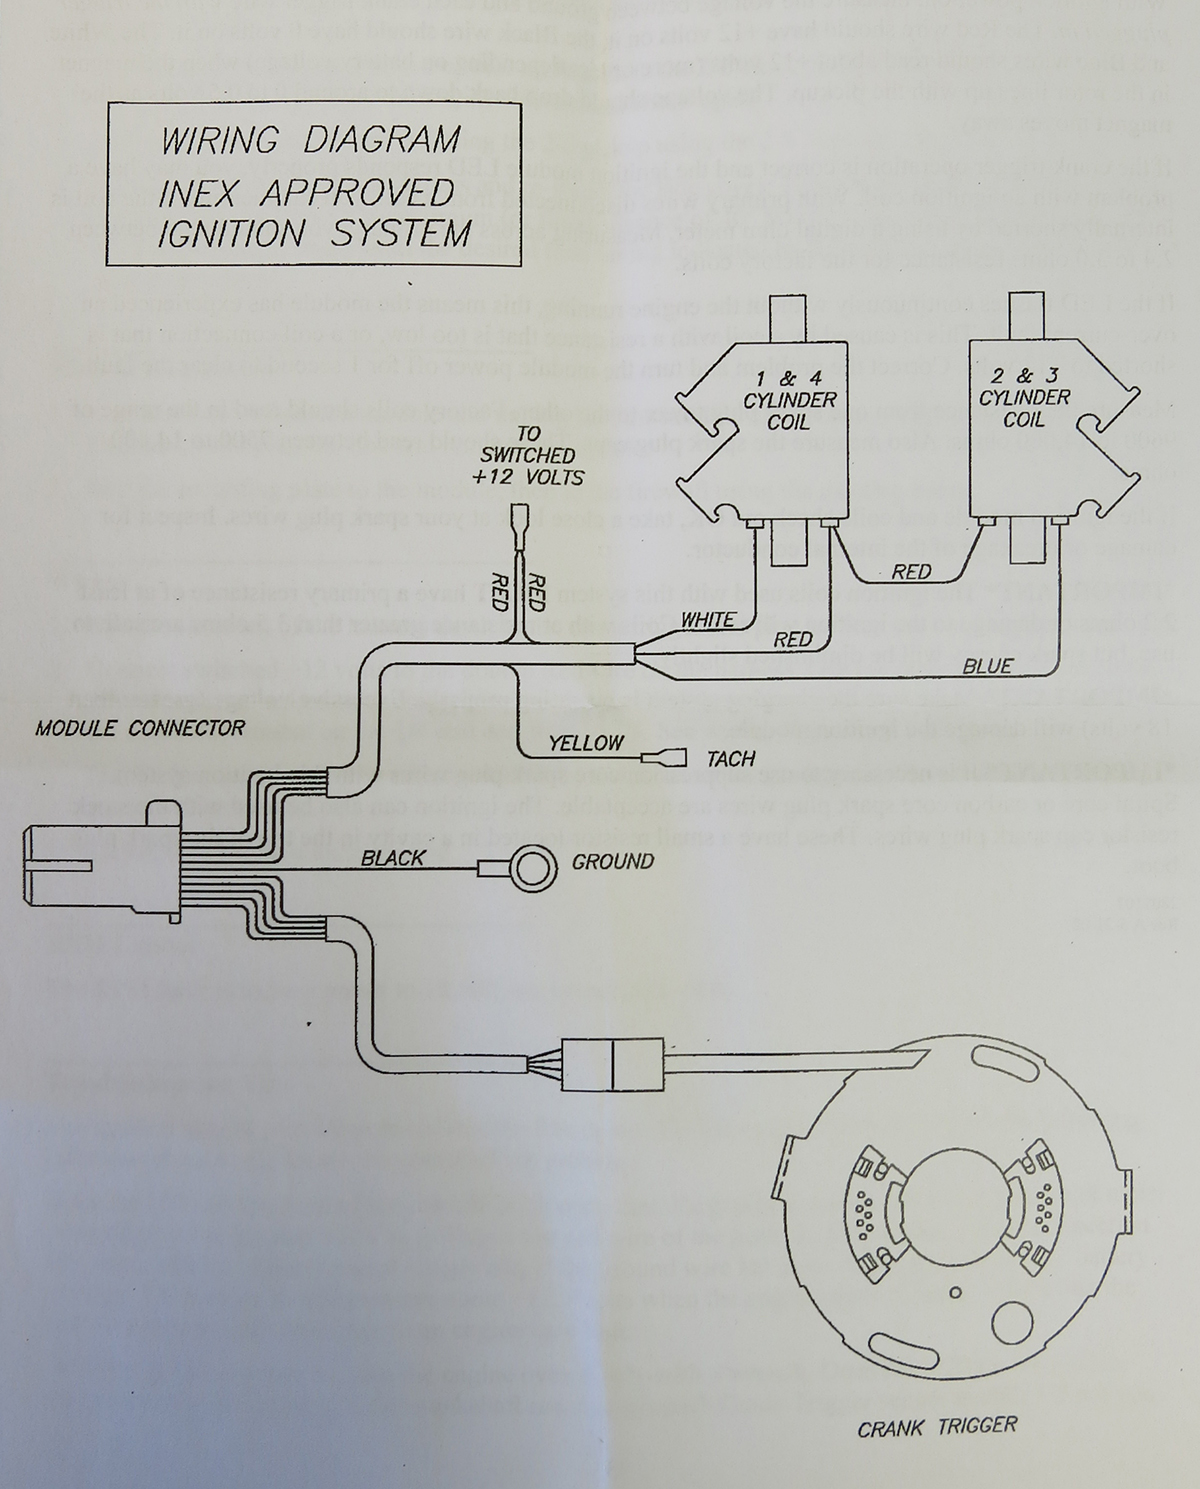 andrews motorsports technical information, engine diagram, race car ignition wiring diagram